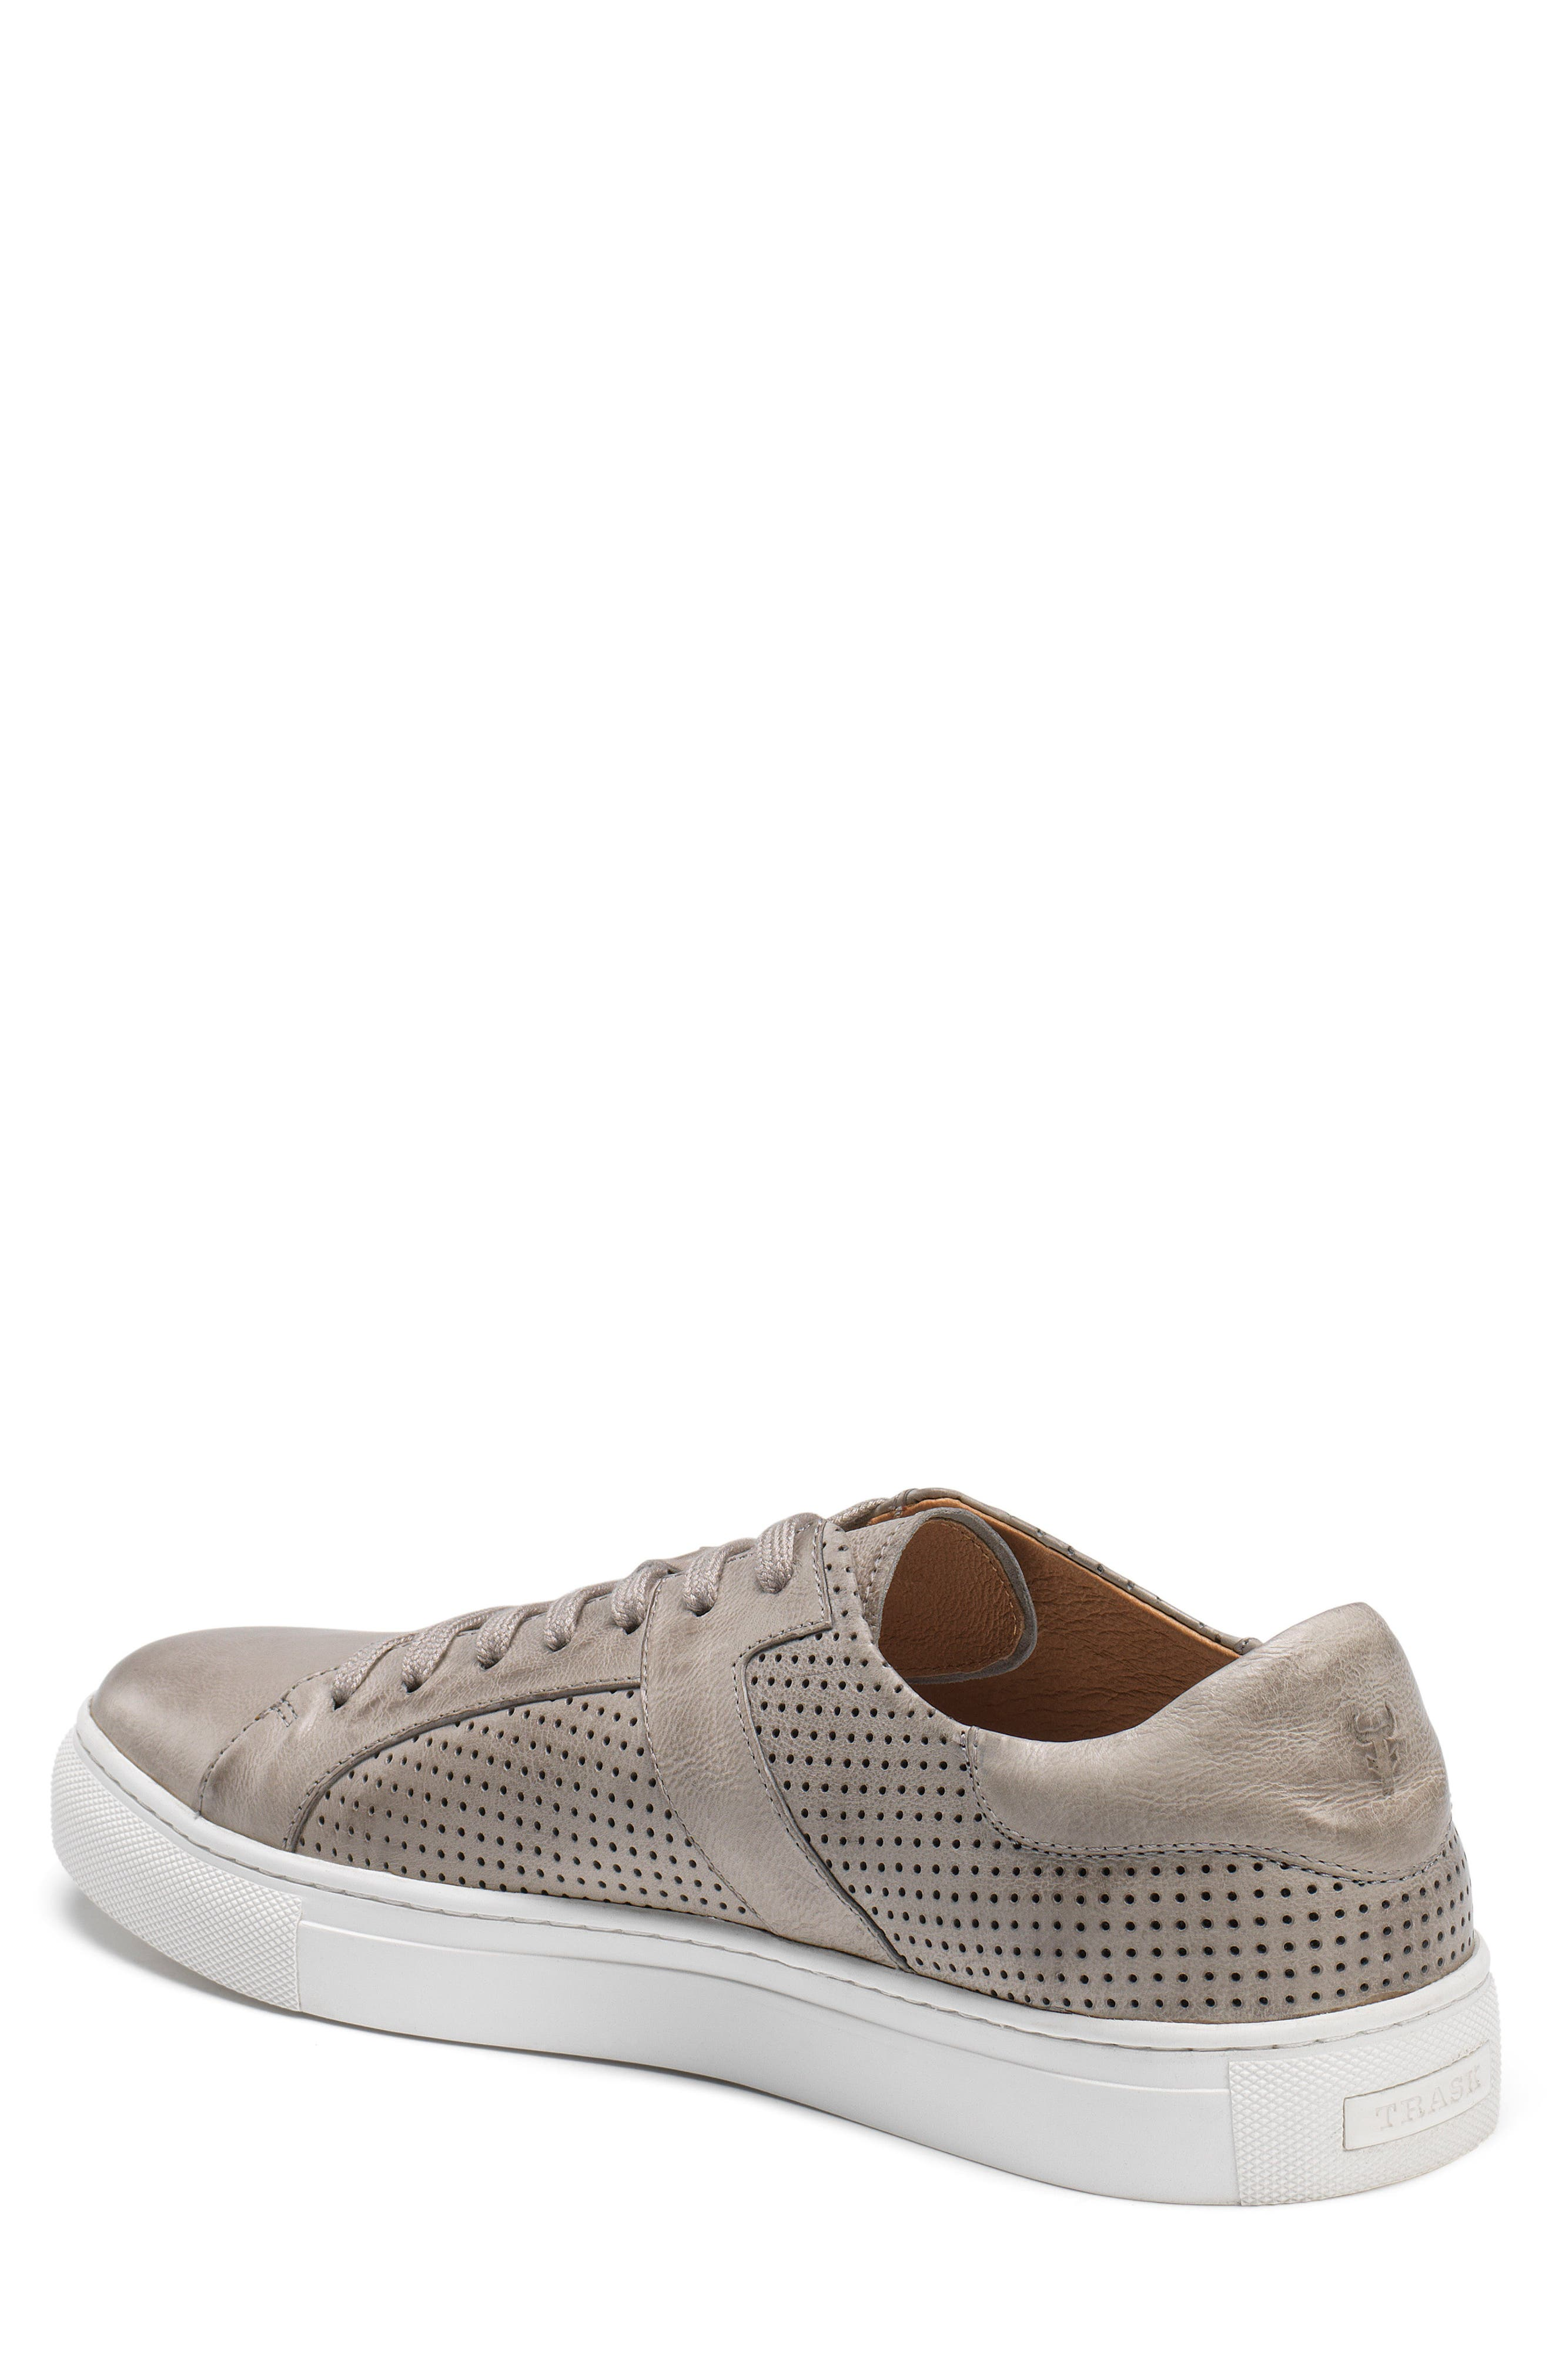 TRASK,                             Aaron Sneaker,                             Alternate thumbnail 2, color,                             LIGHT GREY LEATHER